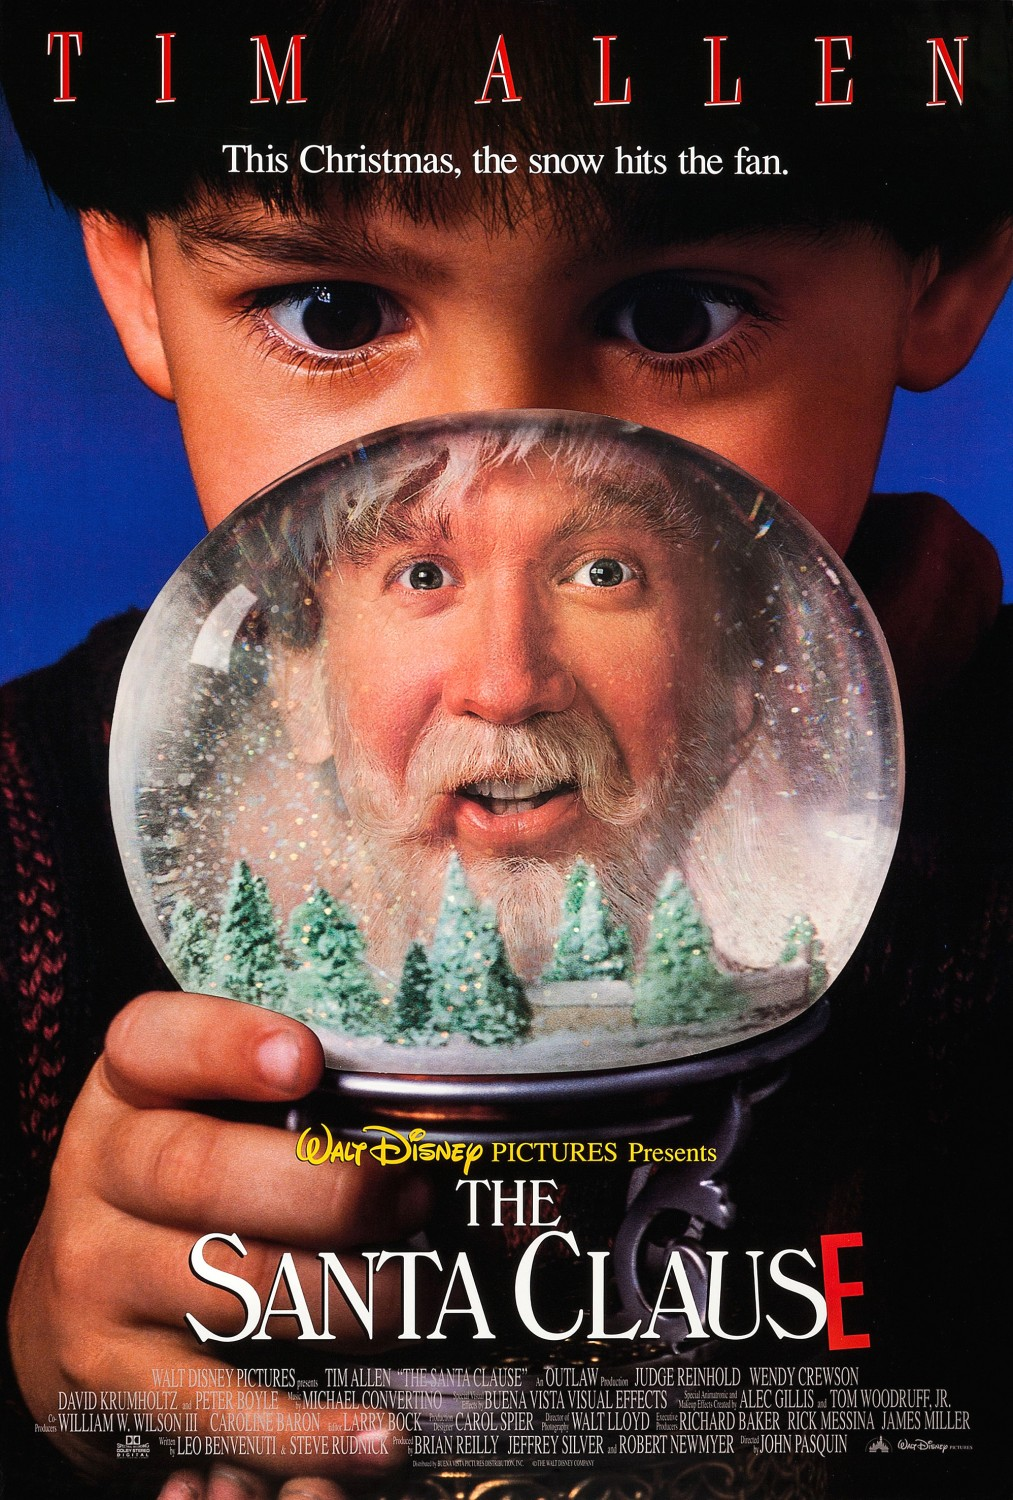 Film Thoughts: WHY DO I OWN THIS?: The Santa Clause (1994)